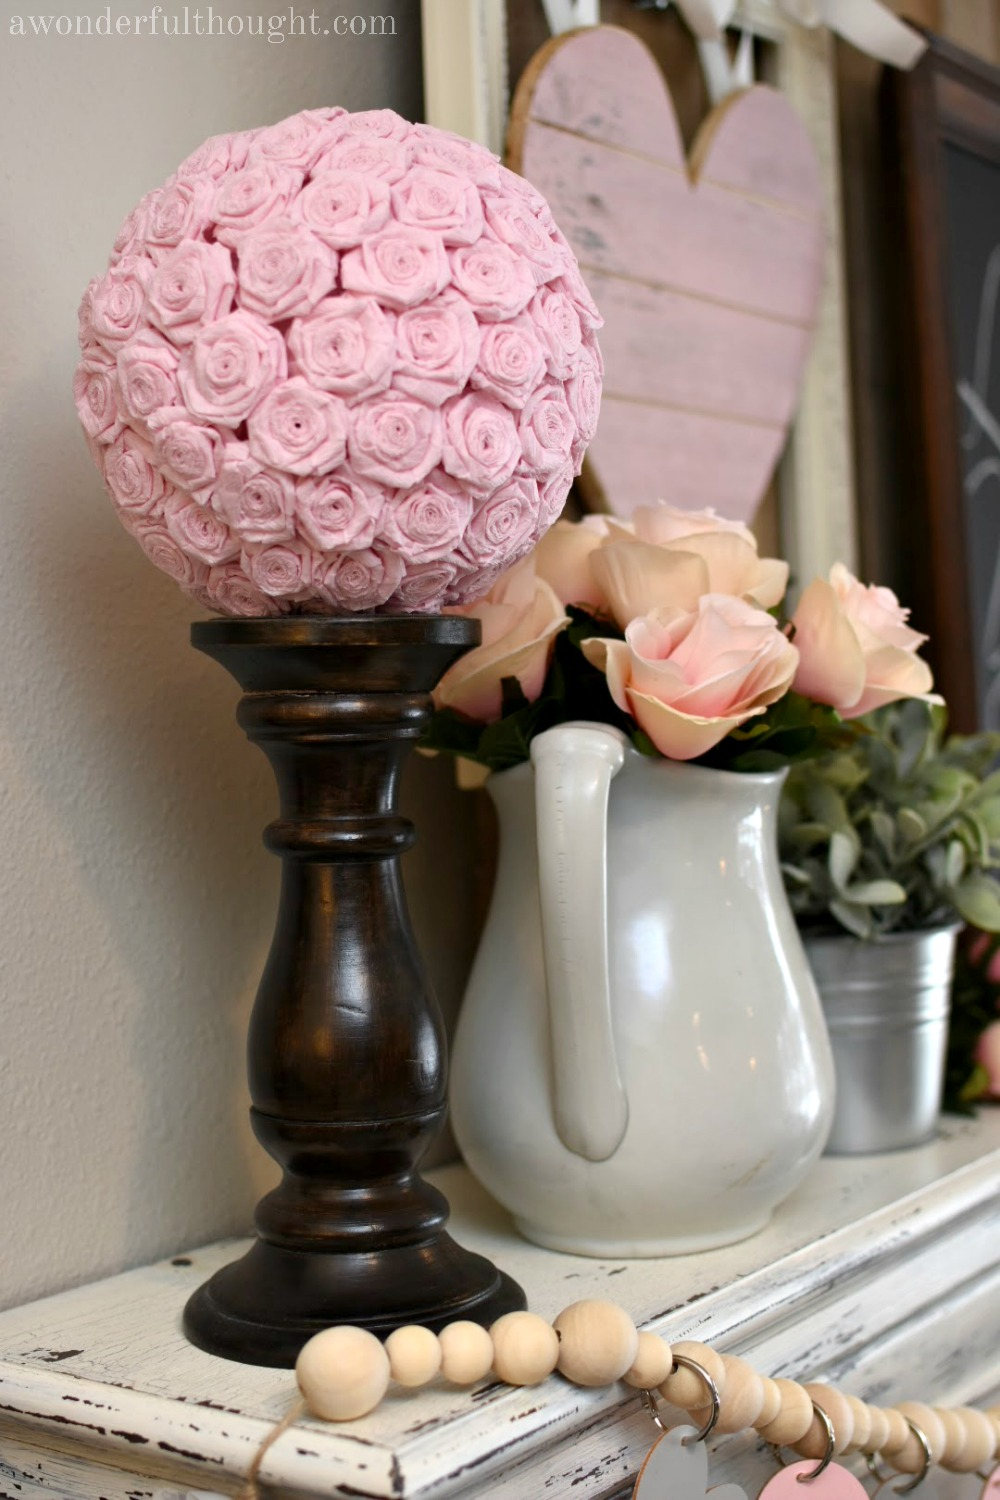 Diy Crepe Paper Flower Kissing Ball A Wonderful Thought